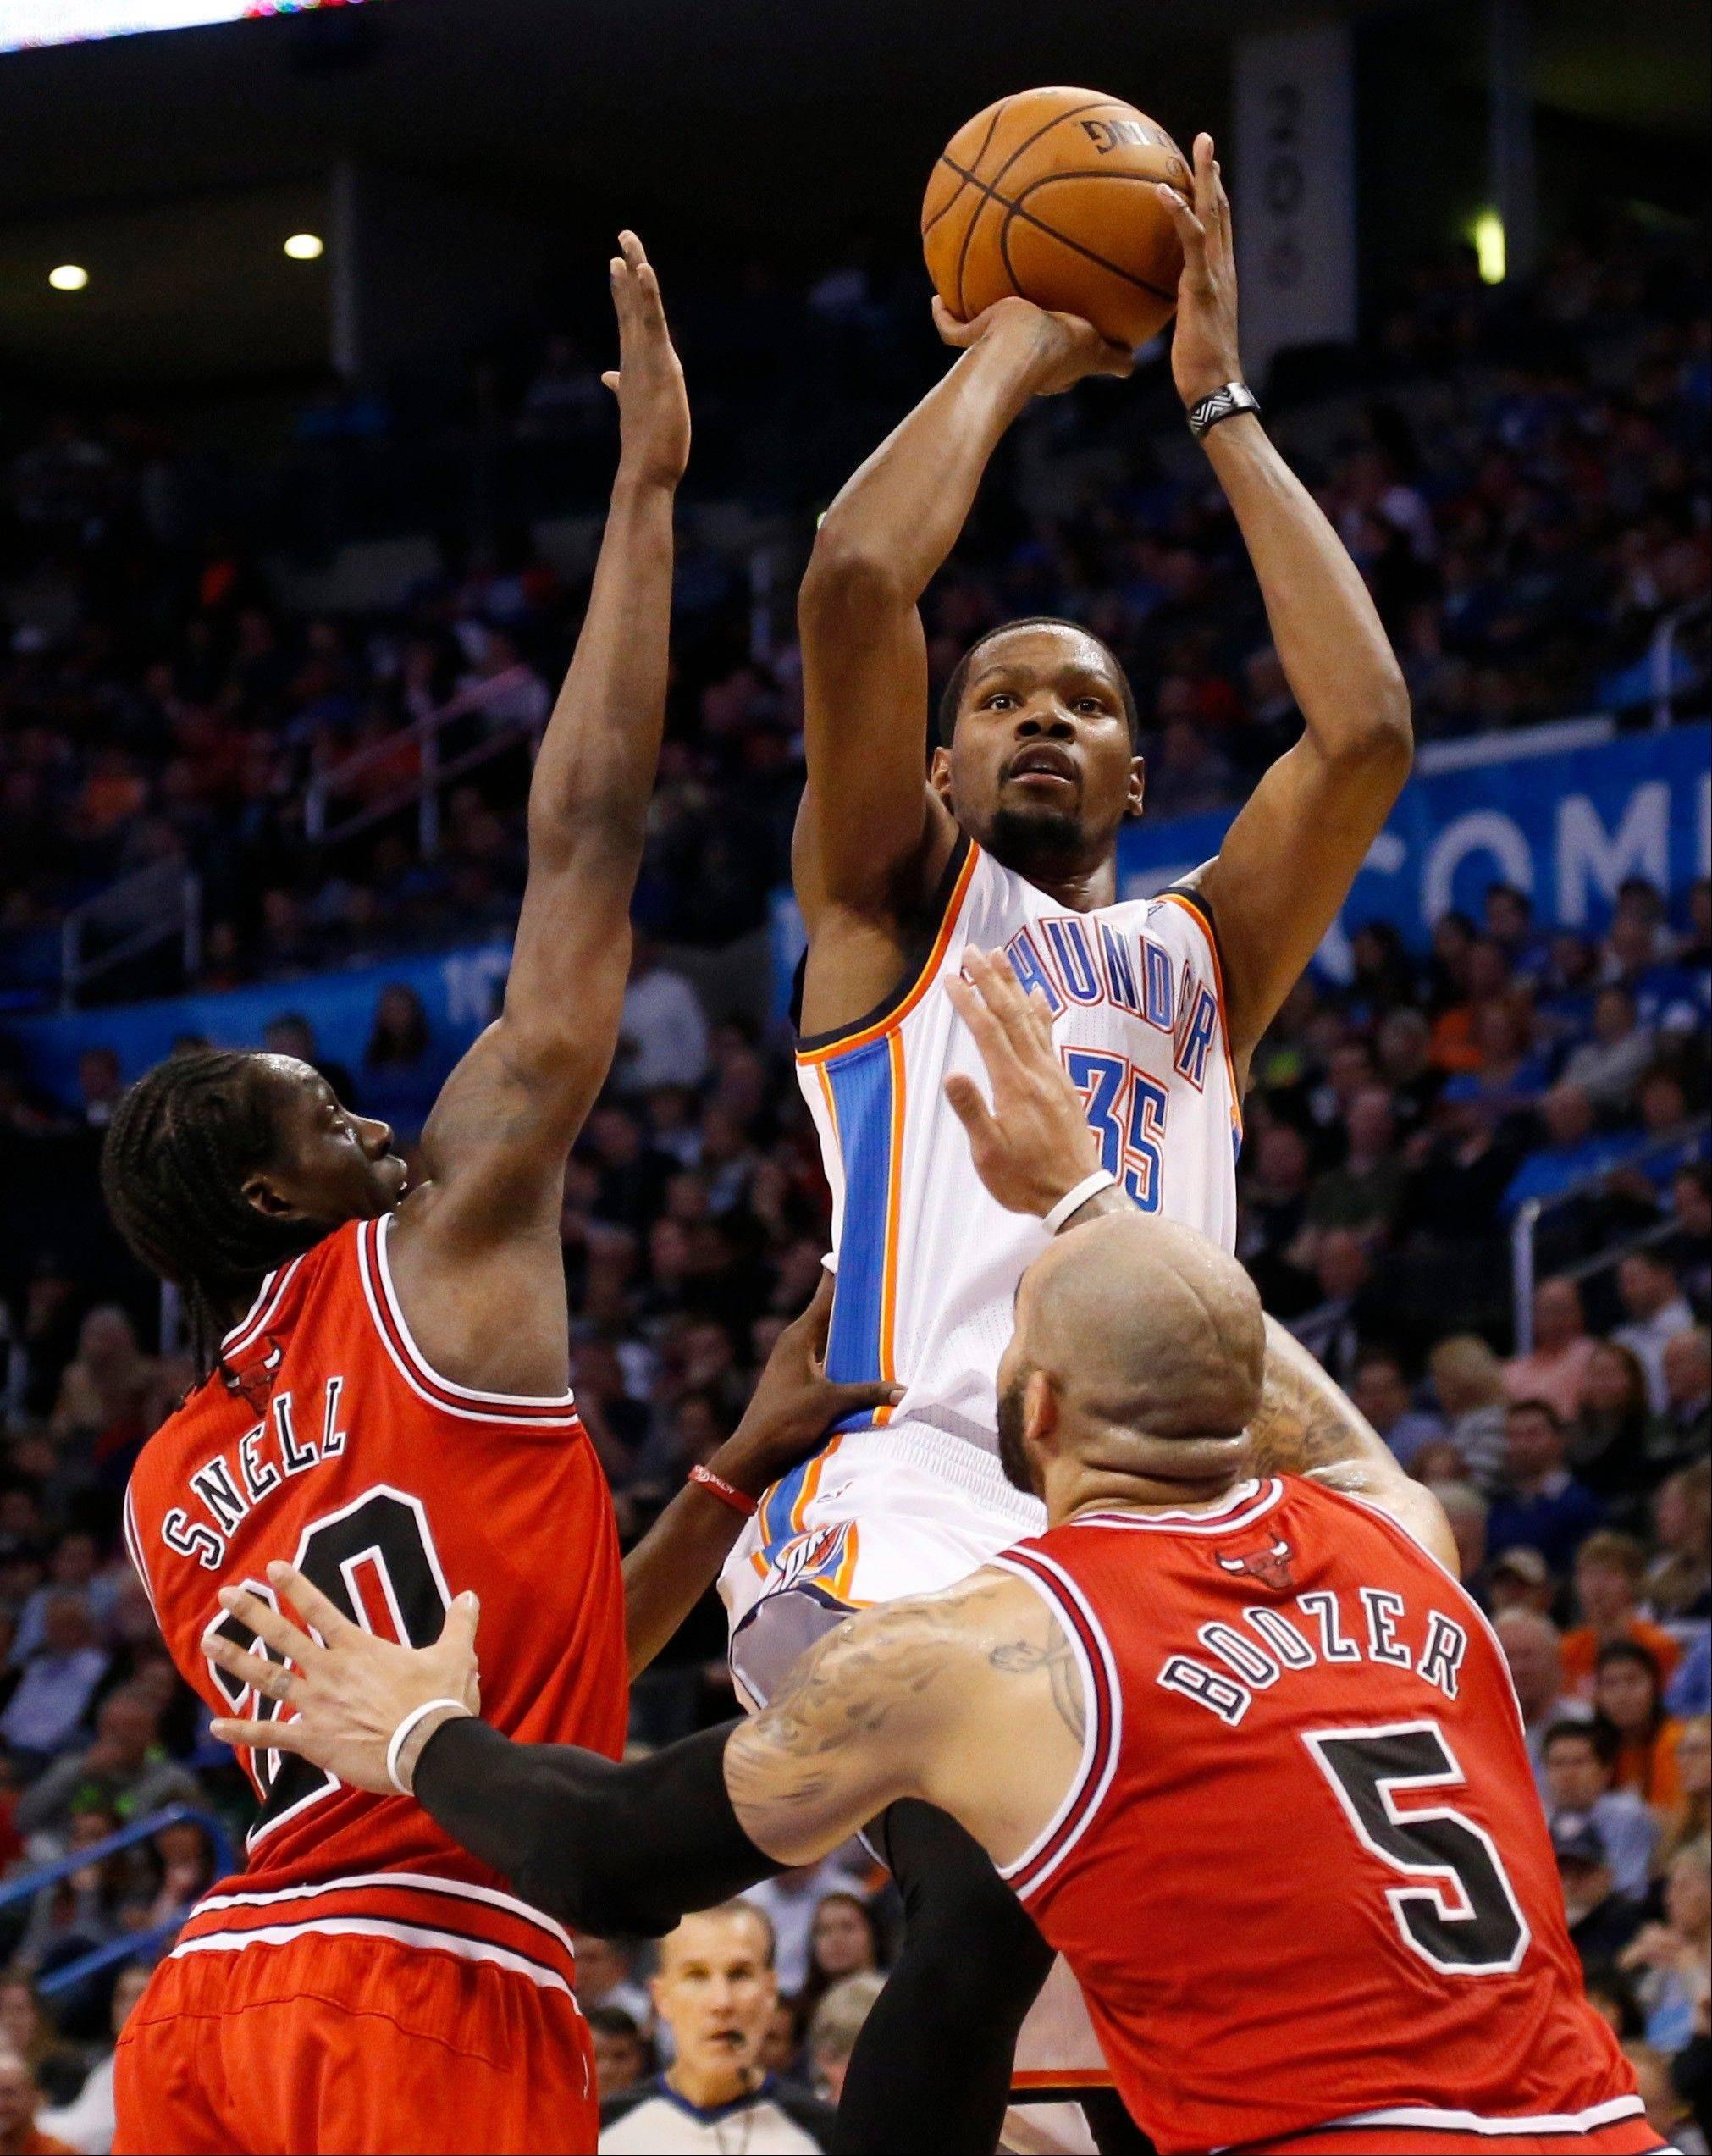 Oklahoma City Thunder forward Kevin Durant (35) shoots over Chicago Bulls forwards Tony Snell (20) and Carlos Boozer (5) during the fourth quarter of an NBA basketball game in Oklahoma City, Thursday, Dec. 19, 2013. Oklahoma City won 107-95.